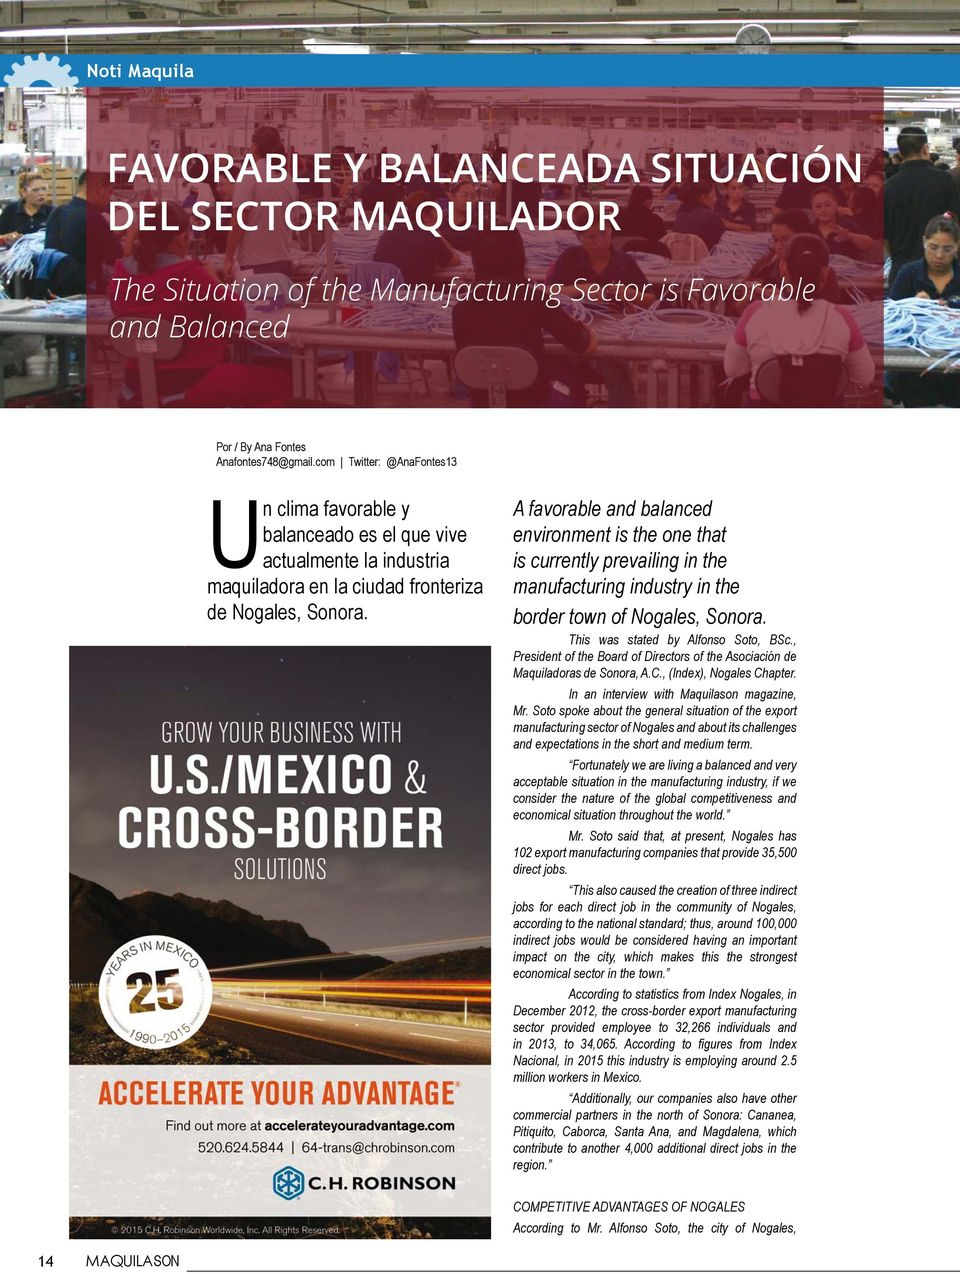 A favorable and balanced environment is the one that is currently prevailing in the manufacturing industry in the border town of Nogales, Sonora. This was stated by Alfonso Soto, BSc.